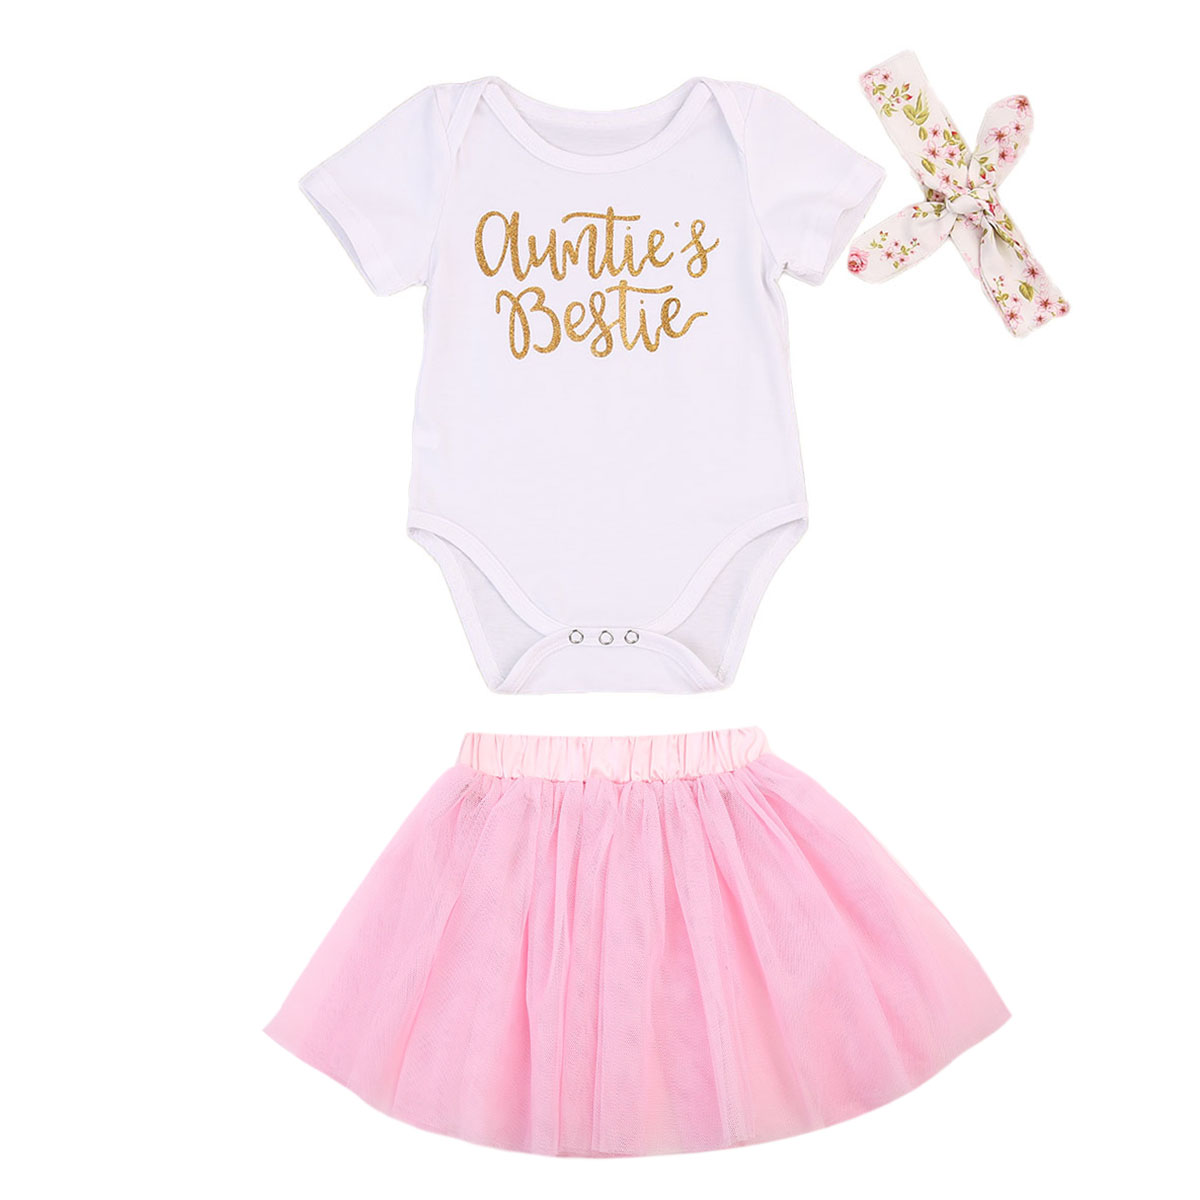 3pcs Cute Newborn Baby Girls Clothes Short Sleeve Letters Print Romper+Tutu Tulle Skirts+Headwear Sets Summer Cotton Baby Sets new fashion toddler kids baby girls clothes vest t shirts tulle tutu skirts princess 2pcs sets summer cute outfits